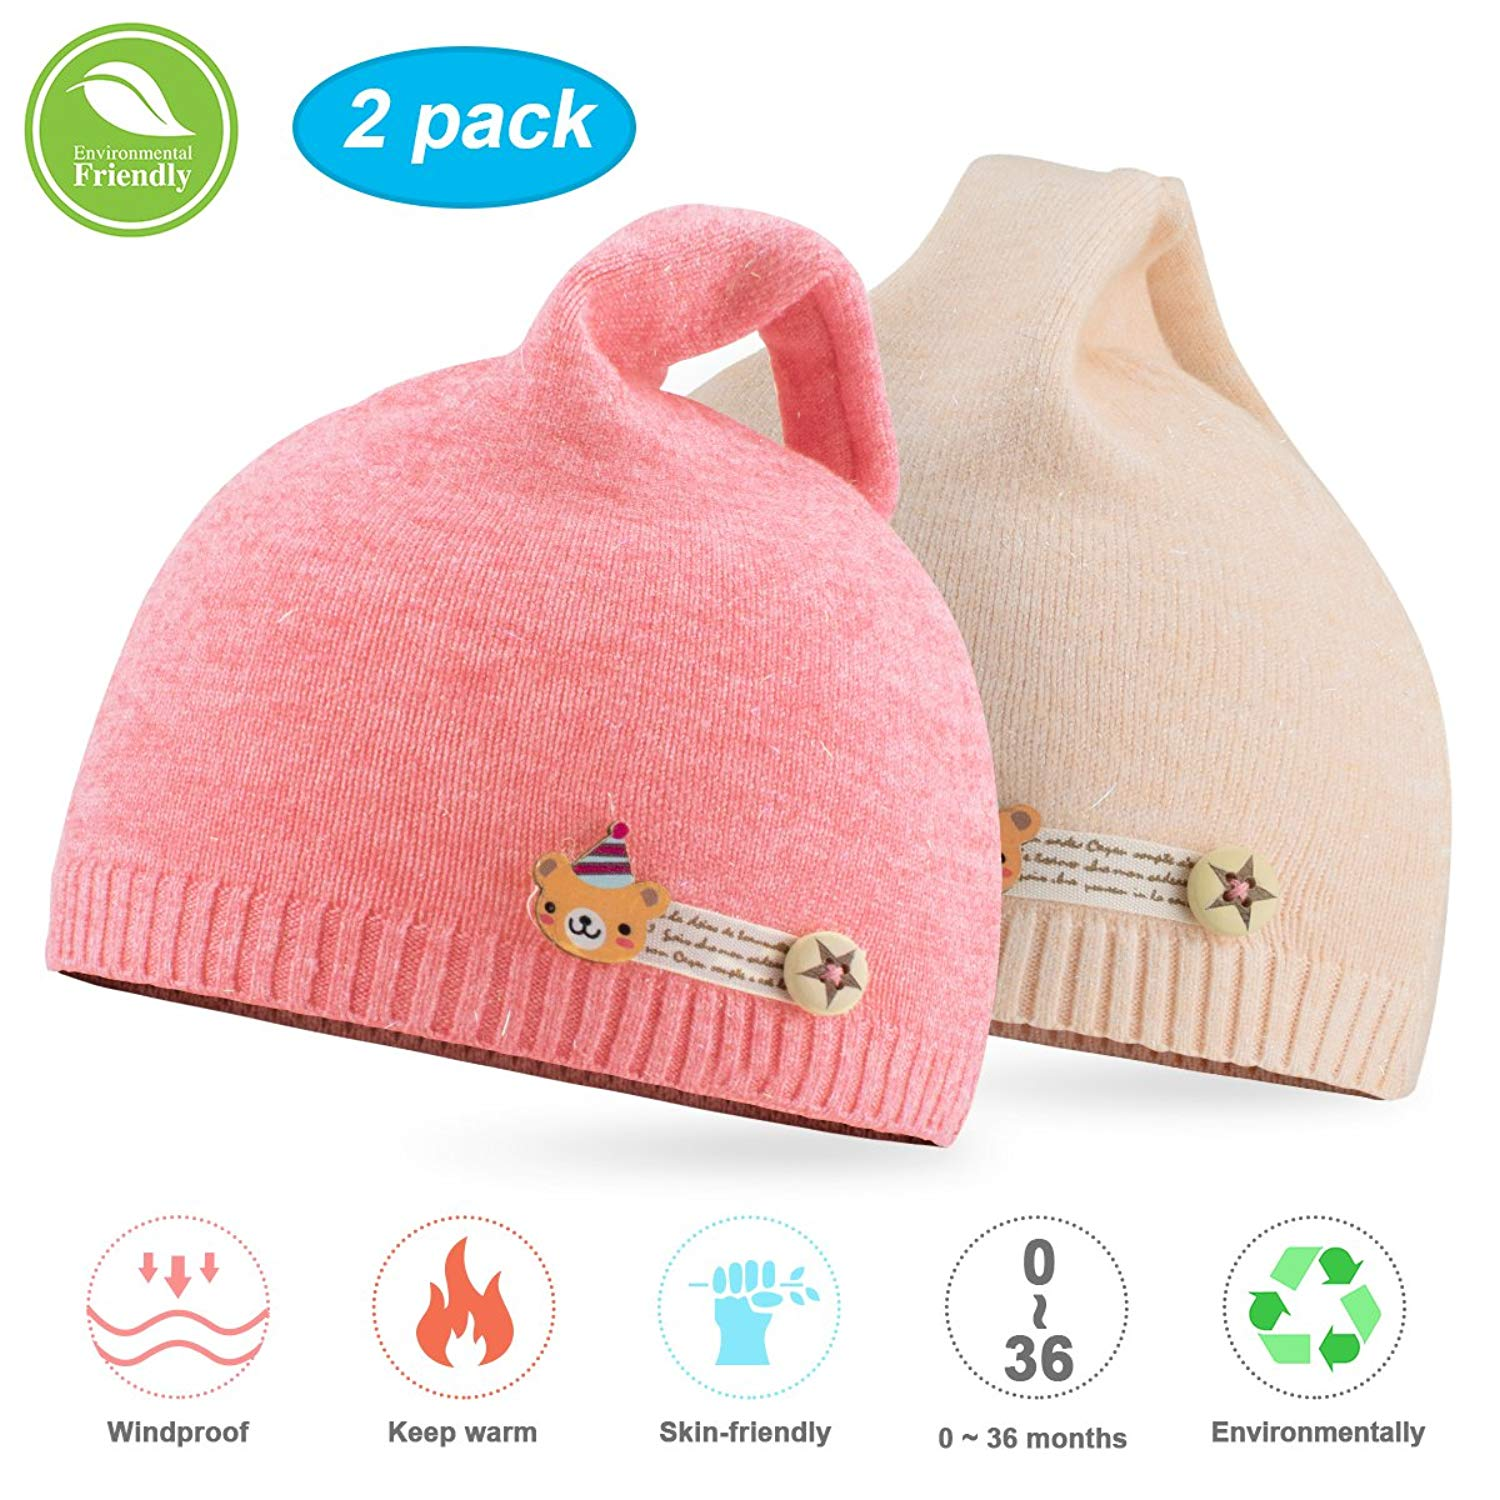 2e7bd509dcf Buy NIOFEI Baby Winter Beanie Hats For Unisex Baby Boys Girls Soft Cotton  Cute Toddler Infant Kids Knit Beanies Hats Caps in Cheap Price on  m.alibaba.com